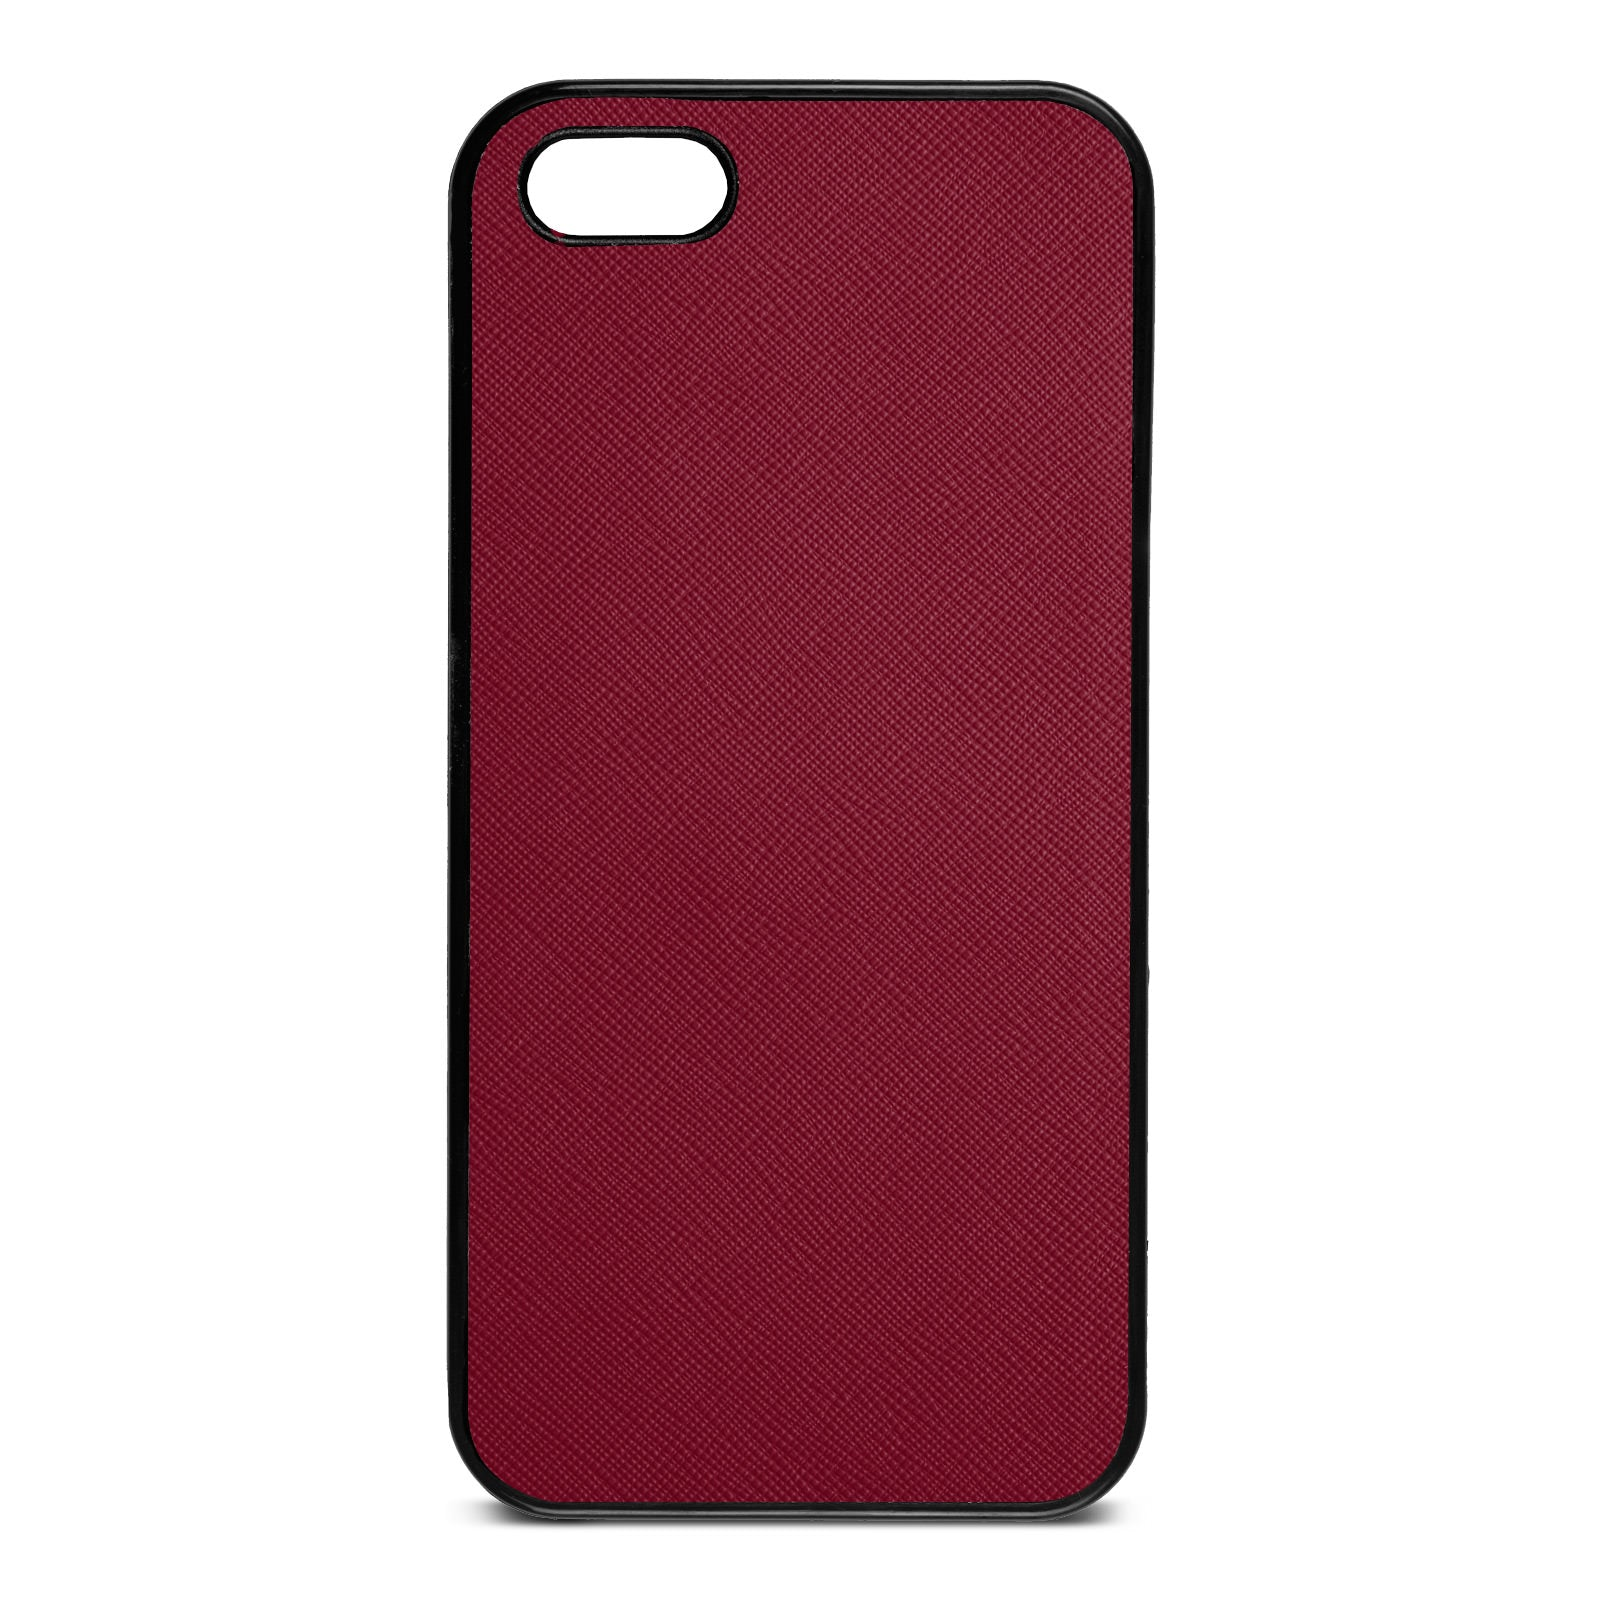 Blank Personalised Dark Red Saffiano Leather iPhone 5 Case